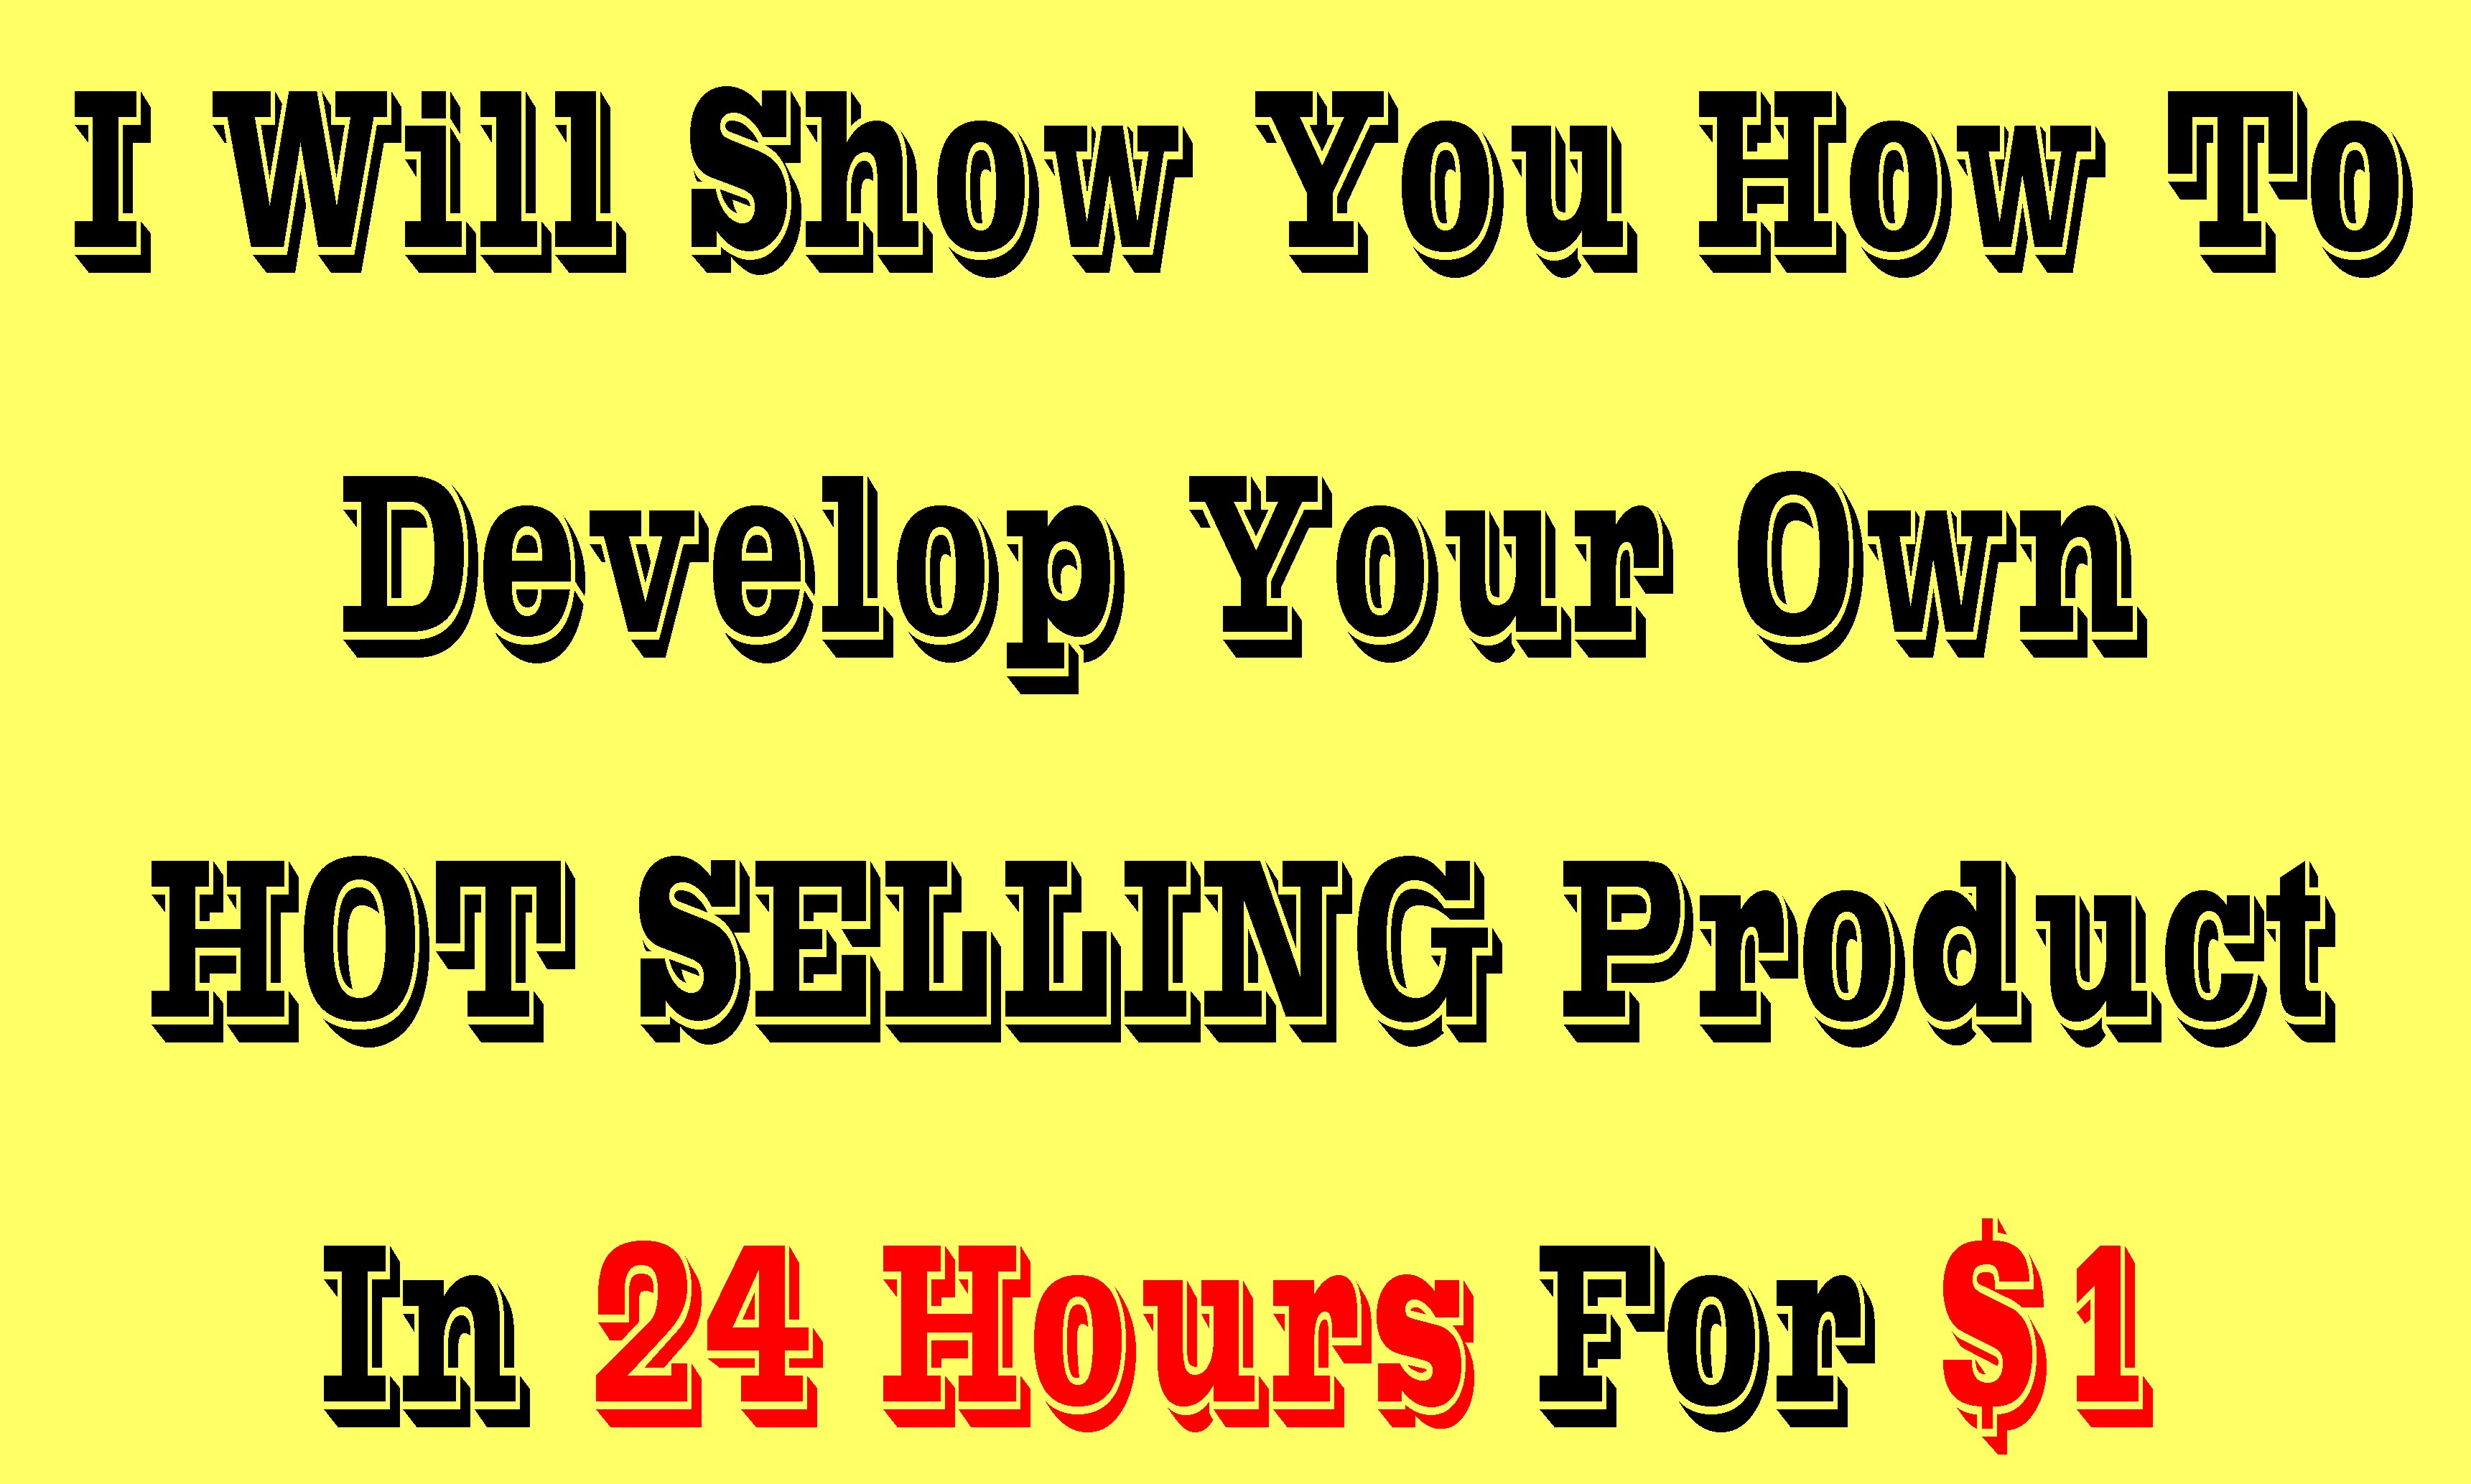 Show You How To Develop Your Own HOT SELLING Product